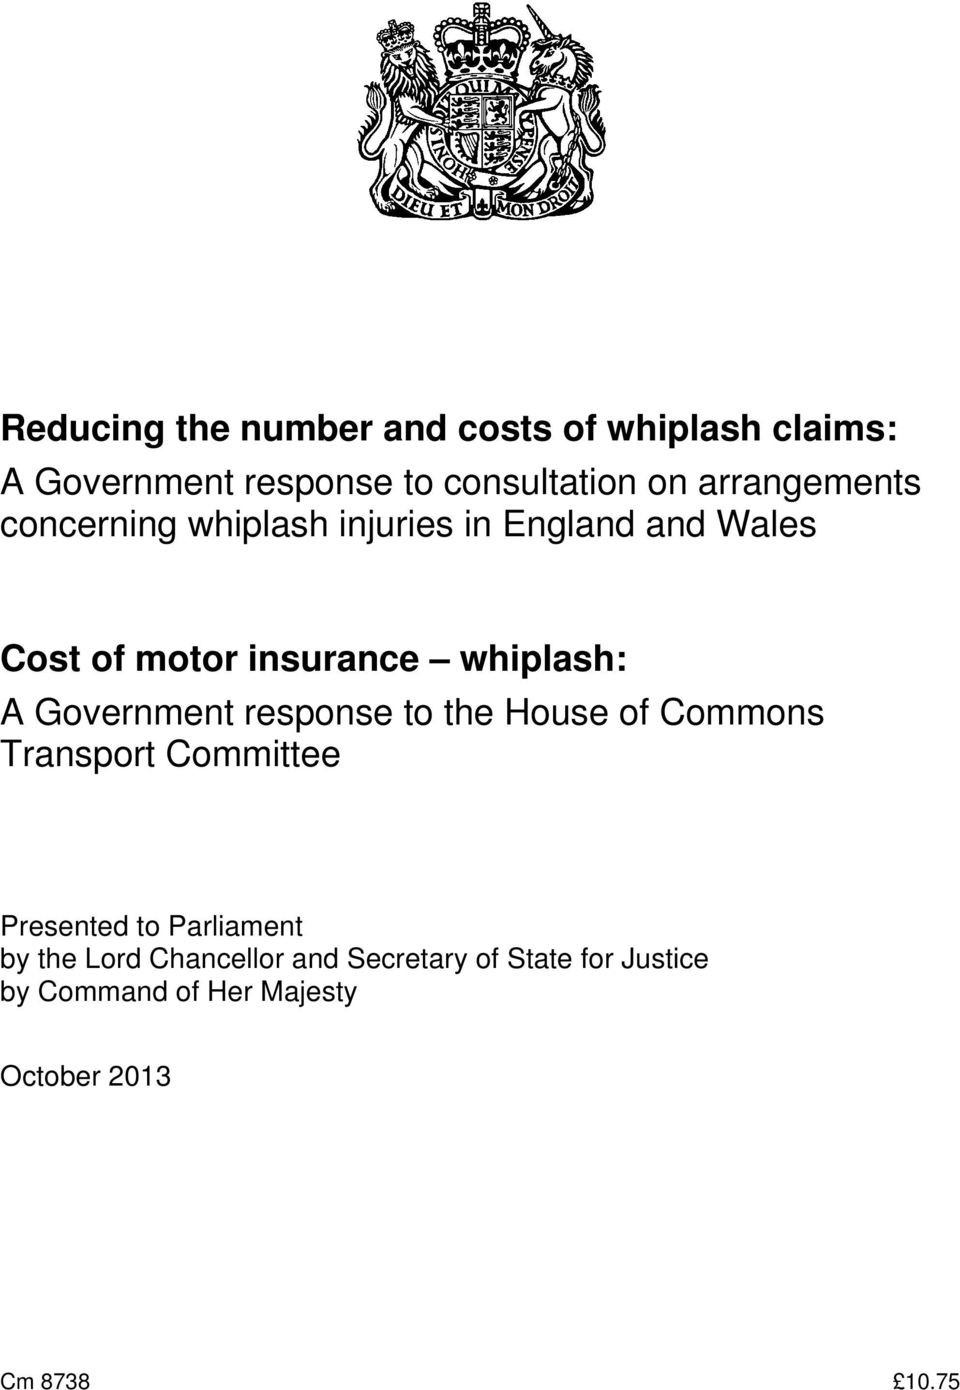 whiplash: A Government response to the House of Commons Transport Presented to Parliament by